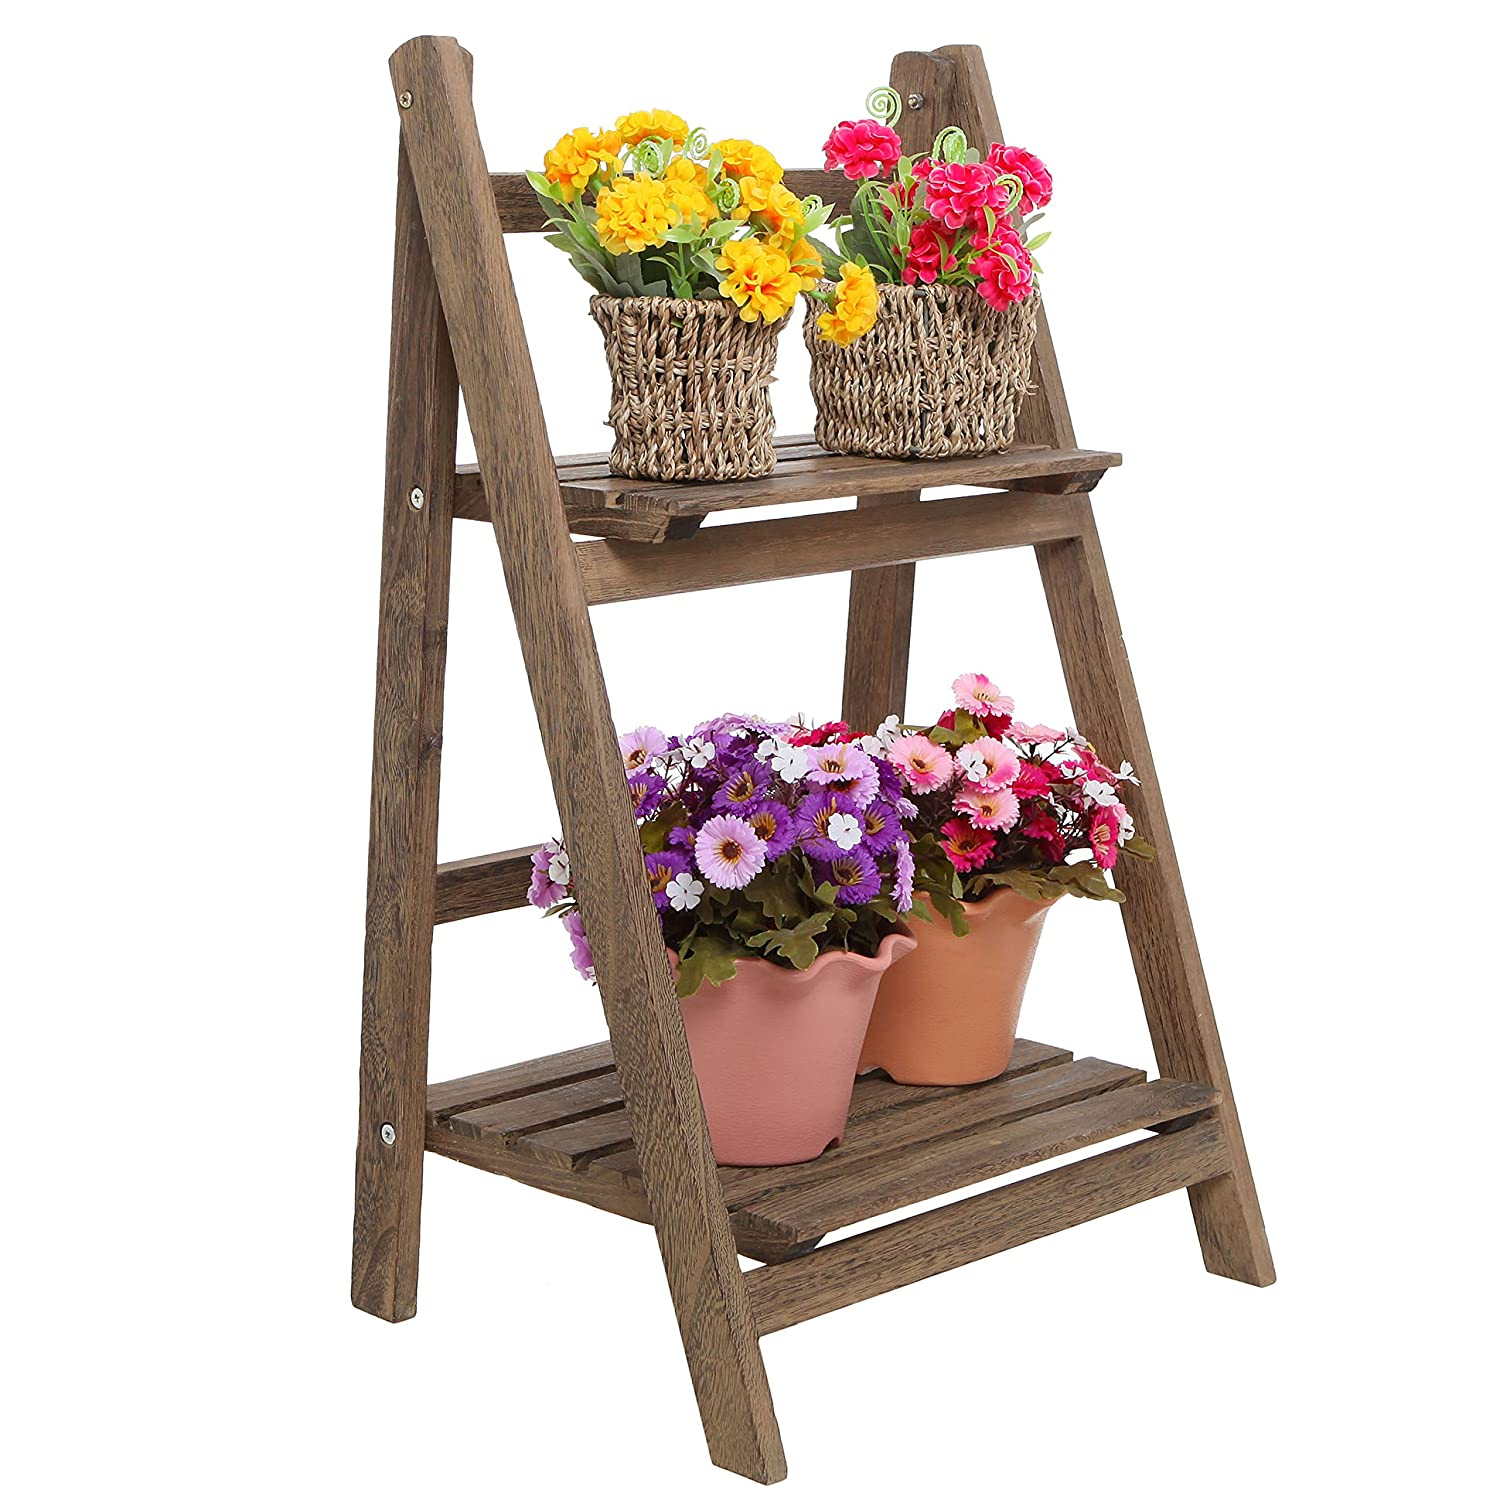 Rustic Brown Wood Design 2 Tier Freestanding Foldable Shelf Rack/Decorative Planter Pot Display Stand MyGift